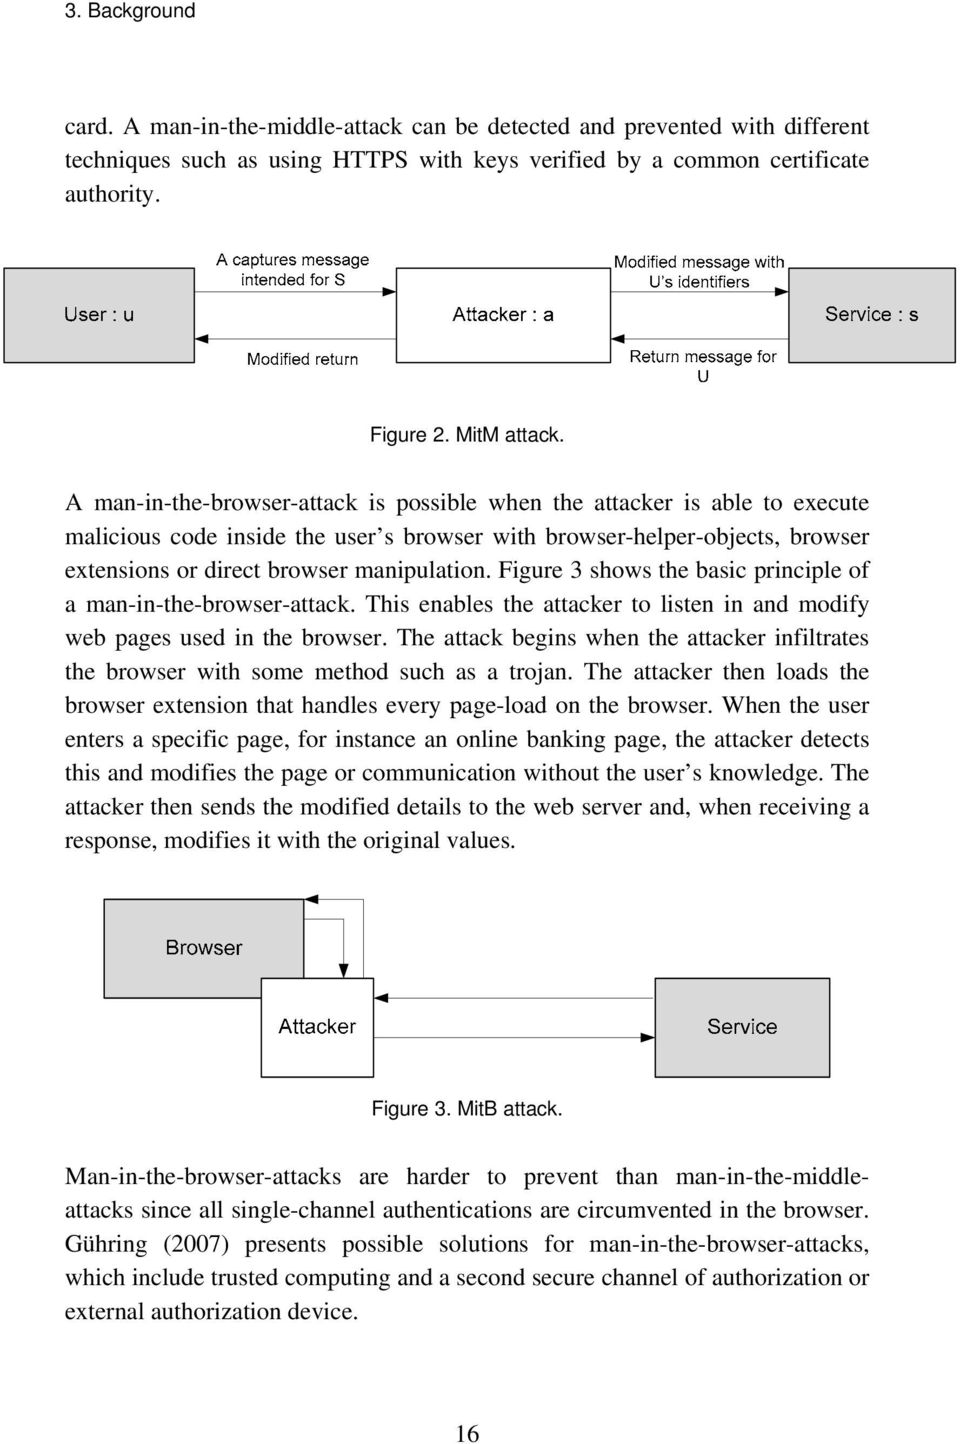 Figure 3 shows the basic principle of a man-in-the-browser-attack. This enables the attacker to listen in and modify web pages used in the browser.